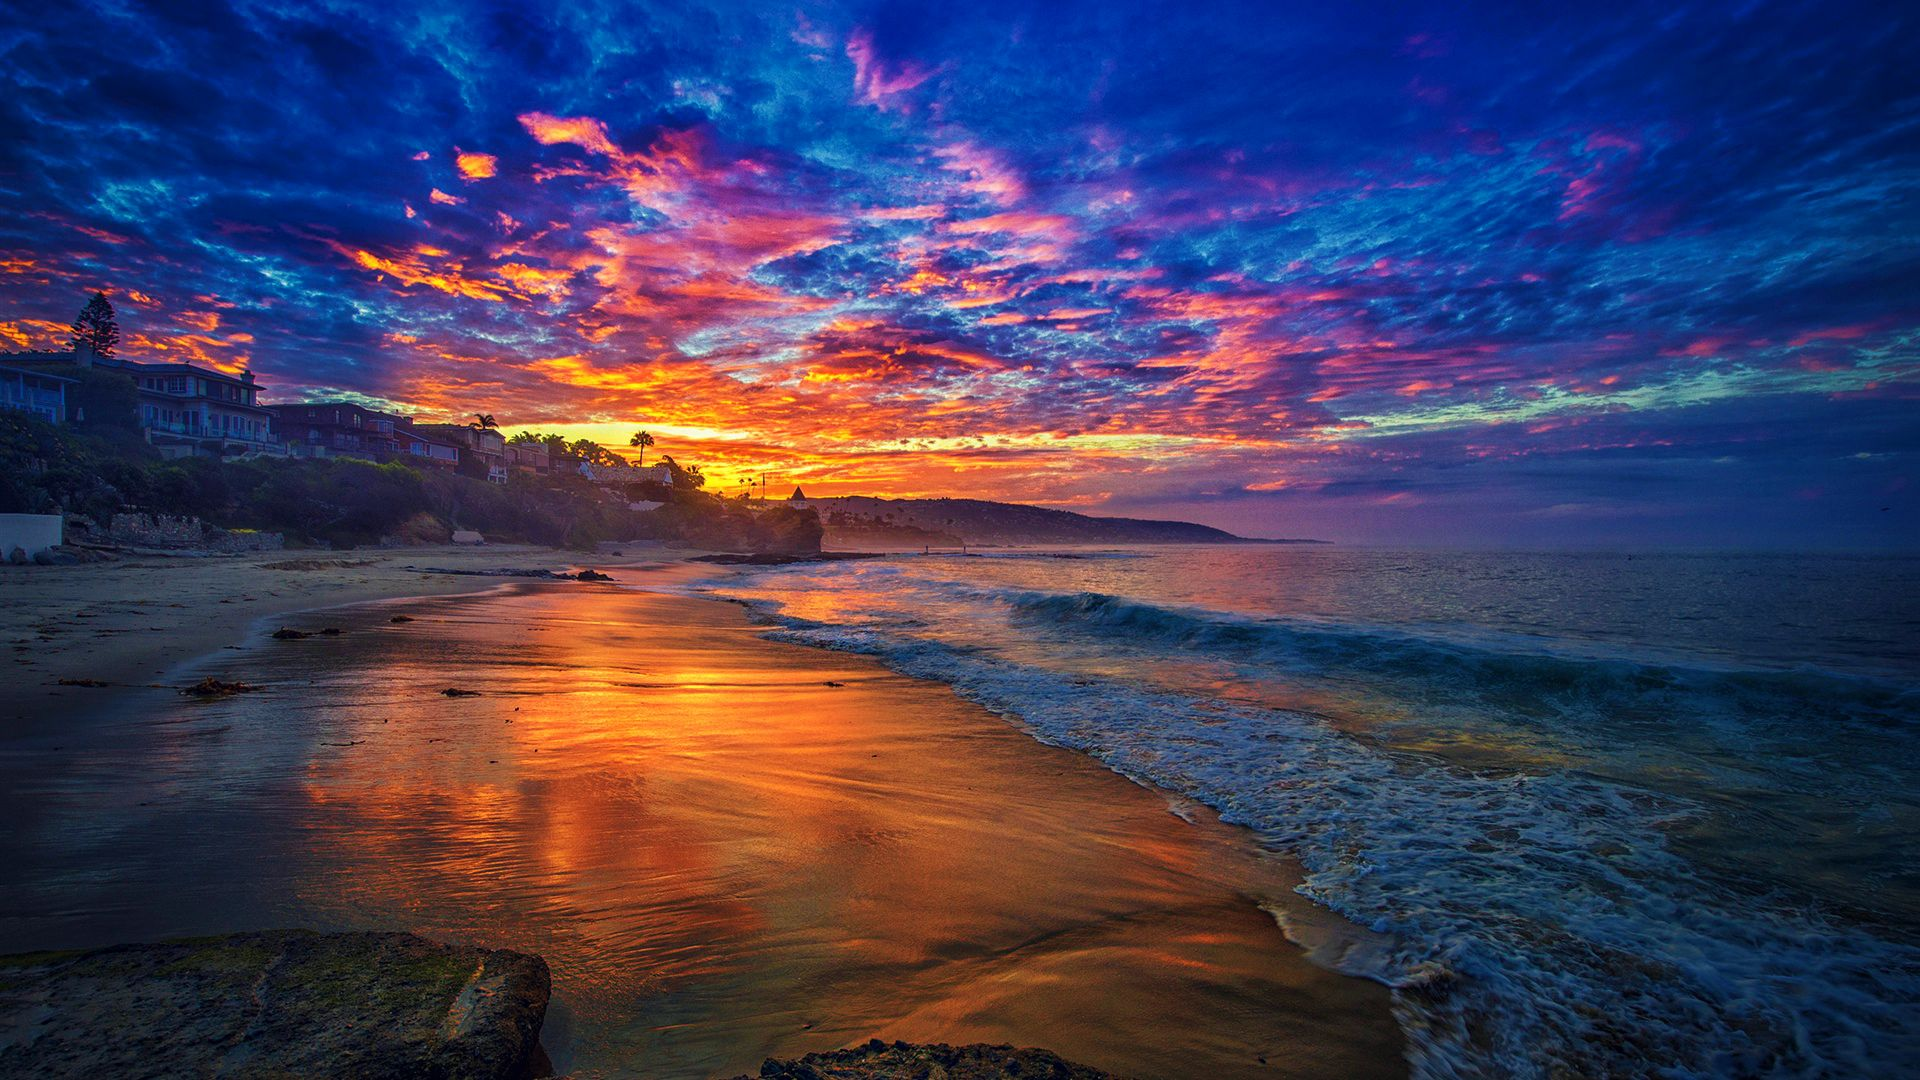 Background clipart sunrise. Beach hd wallpaper images